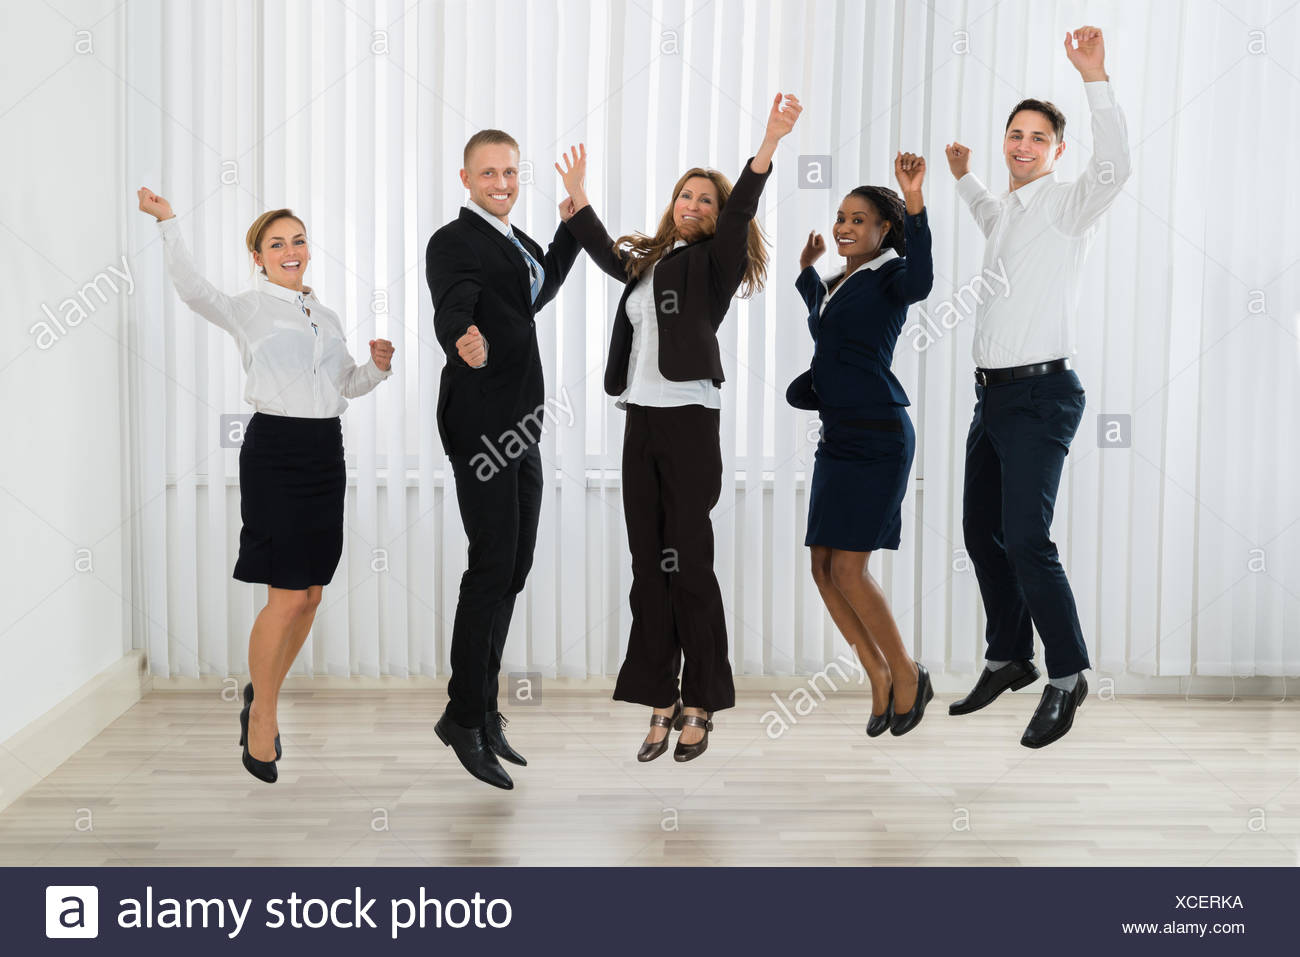 Businesspeople Jumping In Joy - Stock Image